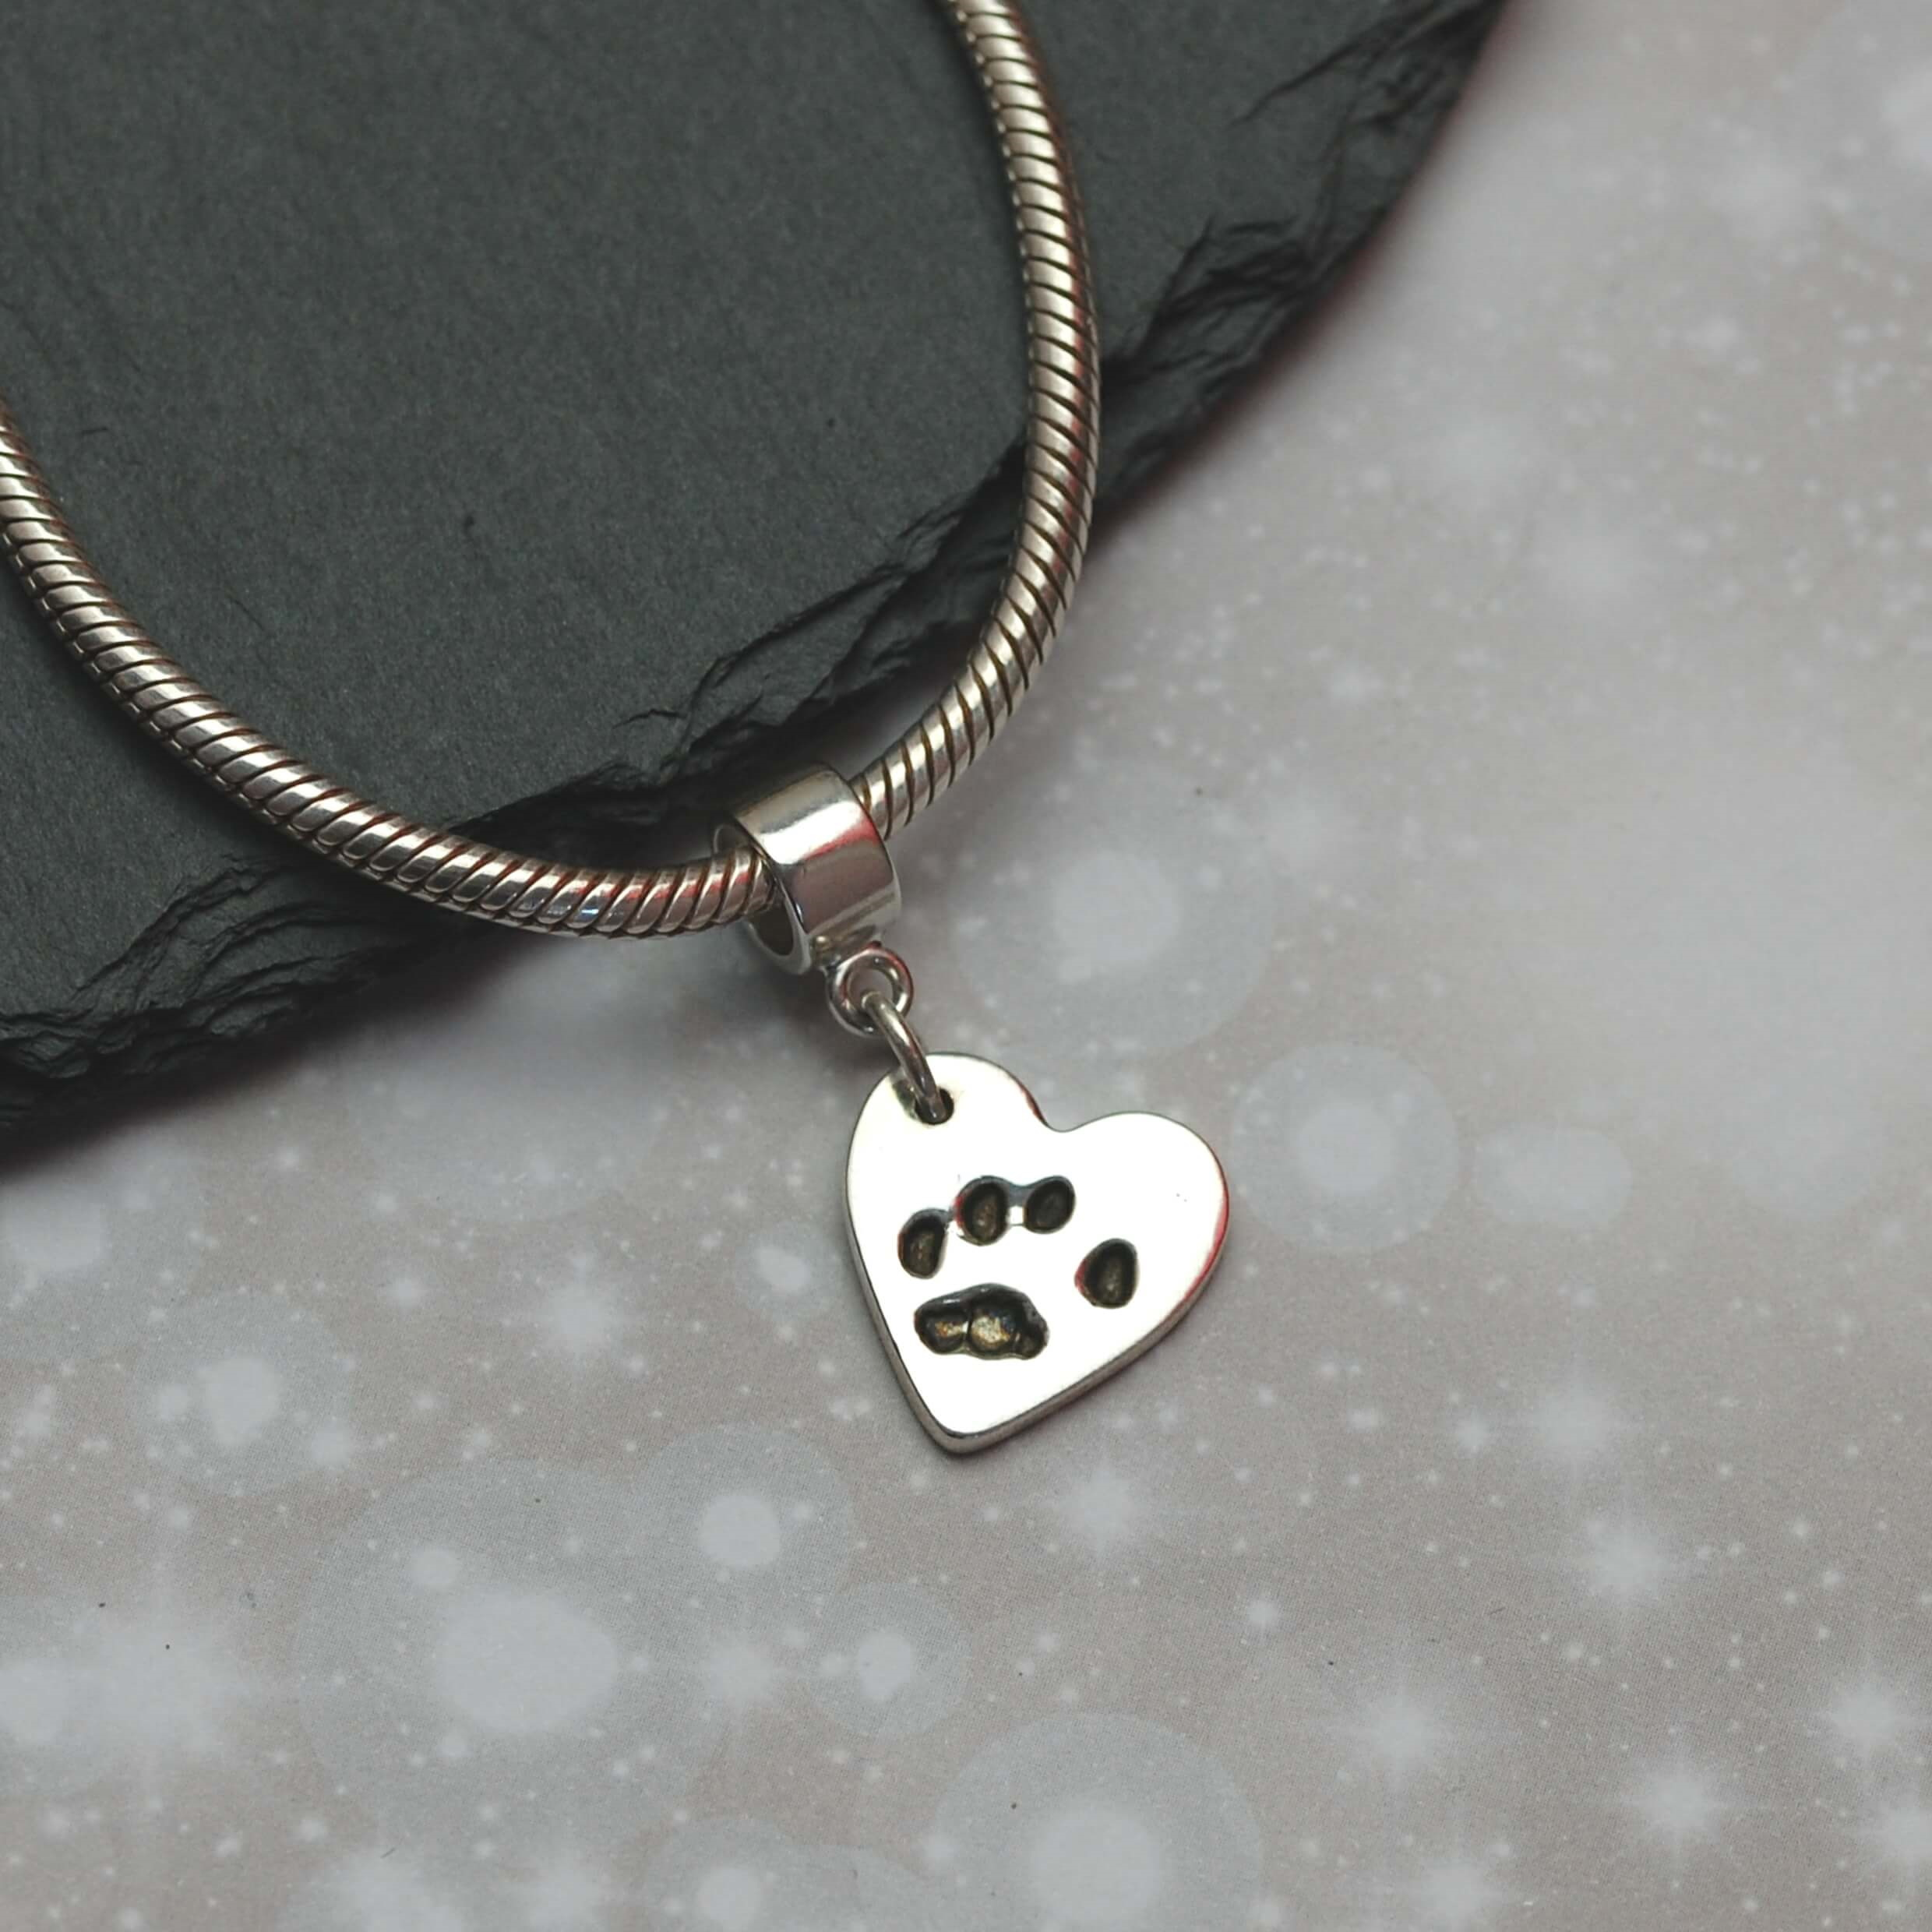 Small silver paw print charm created from silver clay